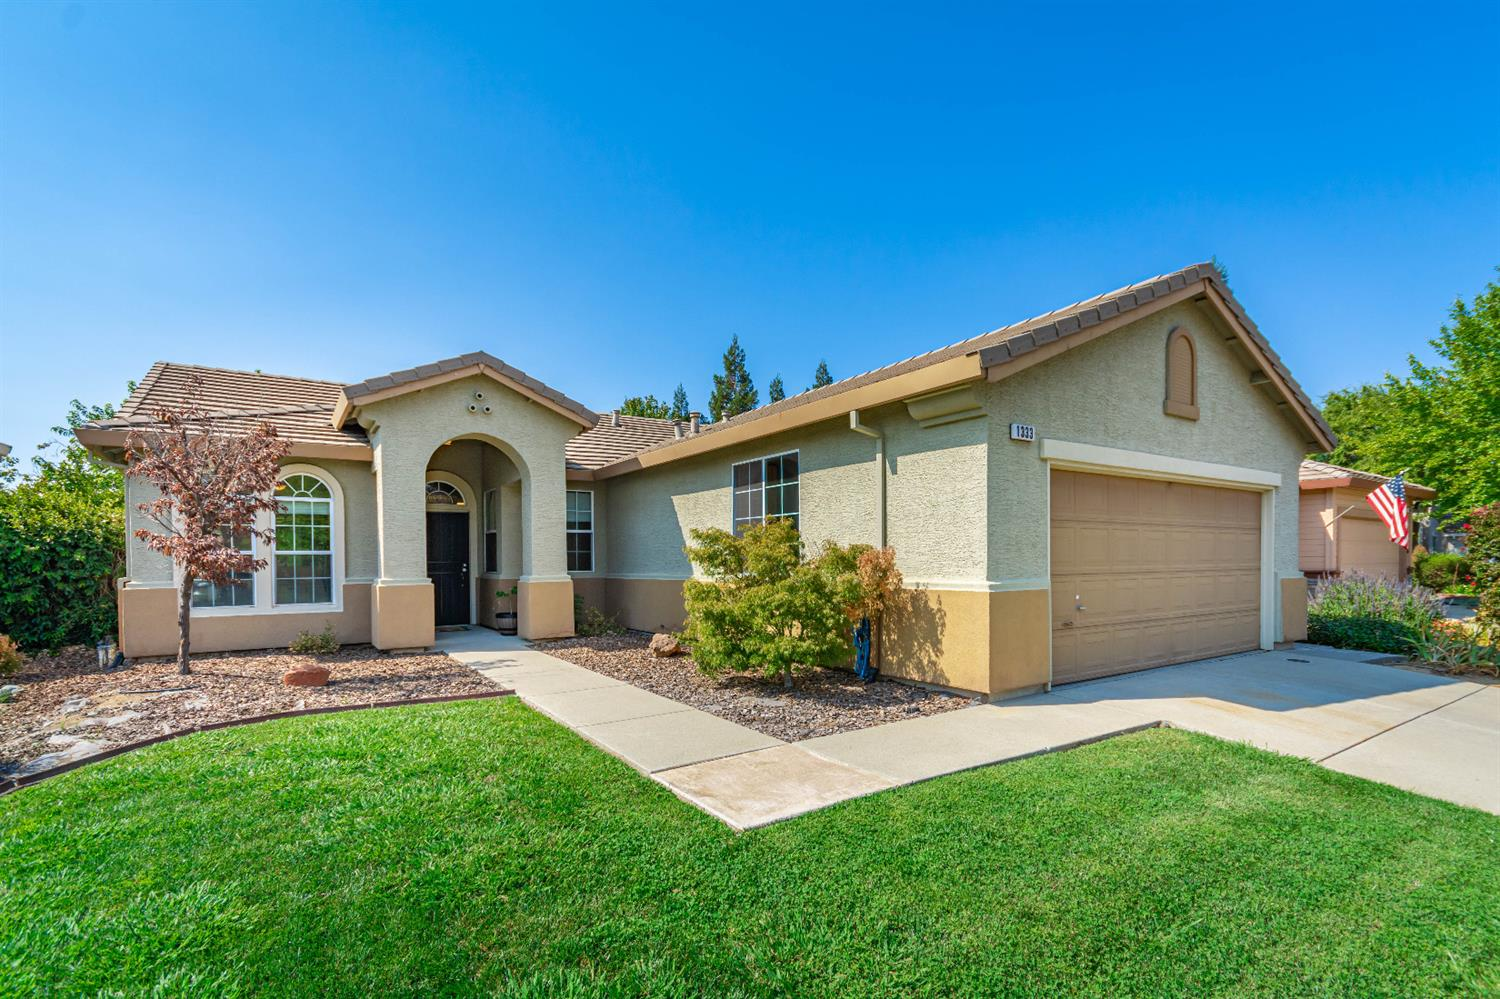 Photo of 1333 Canvasback Circle, Lincoln, CA 95648